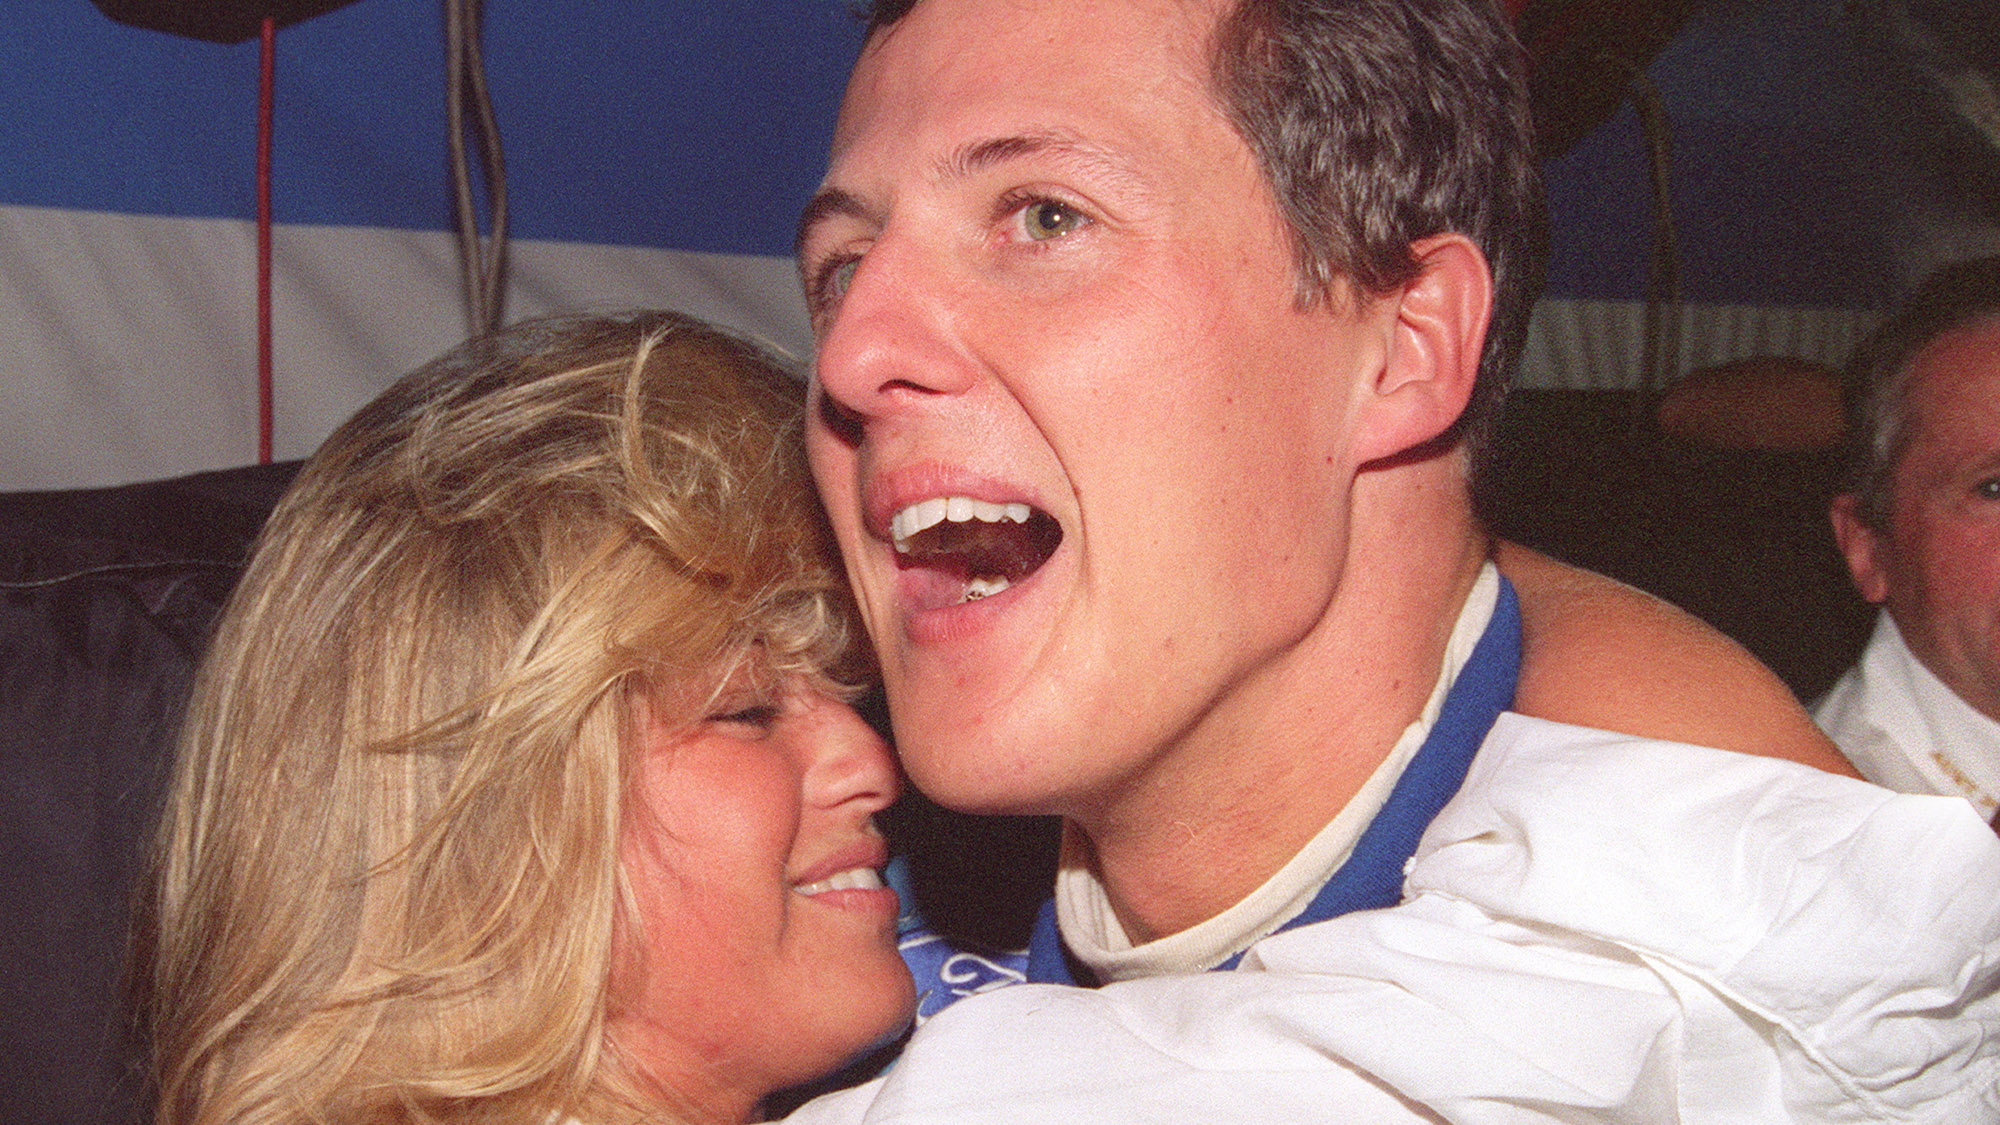 Michael Schumacher celebrates winning his first Formula 1 championship with Corinna at the 1994 Australian Grand Prix in Adelaide